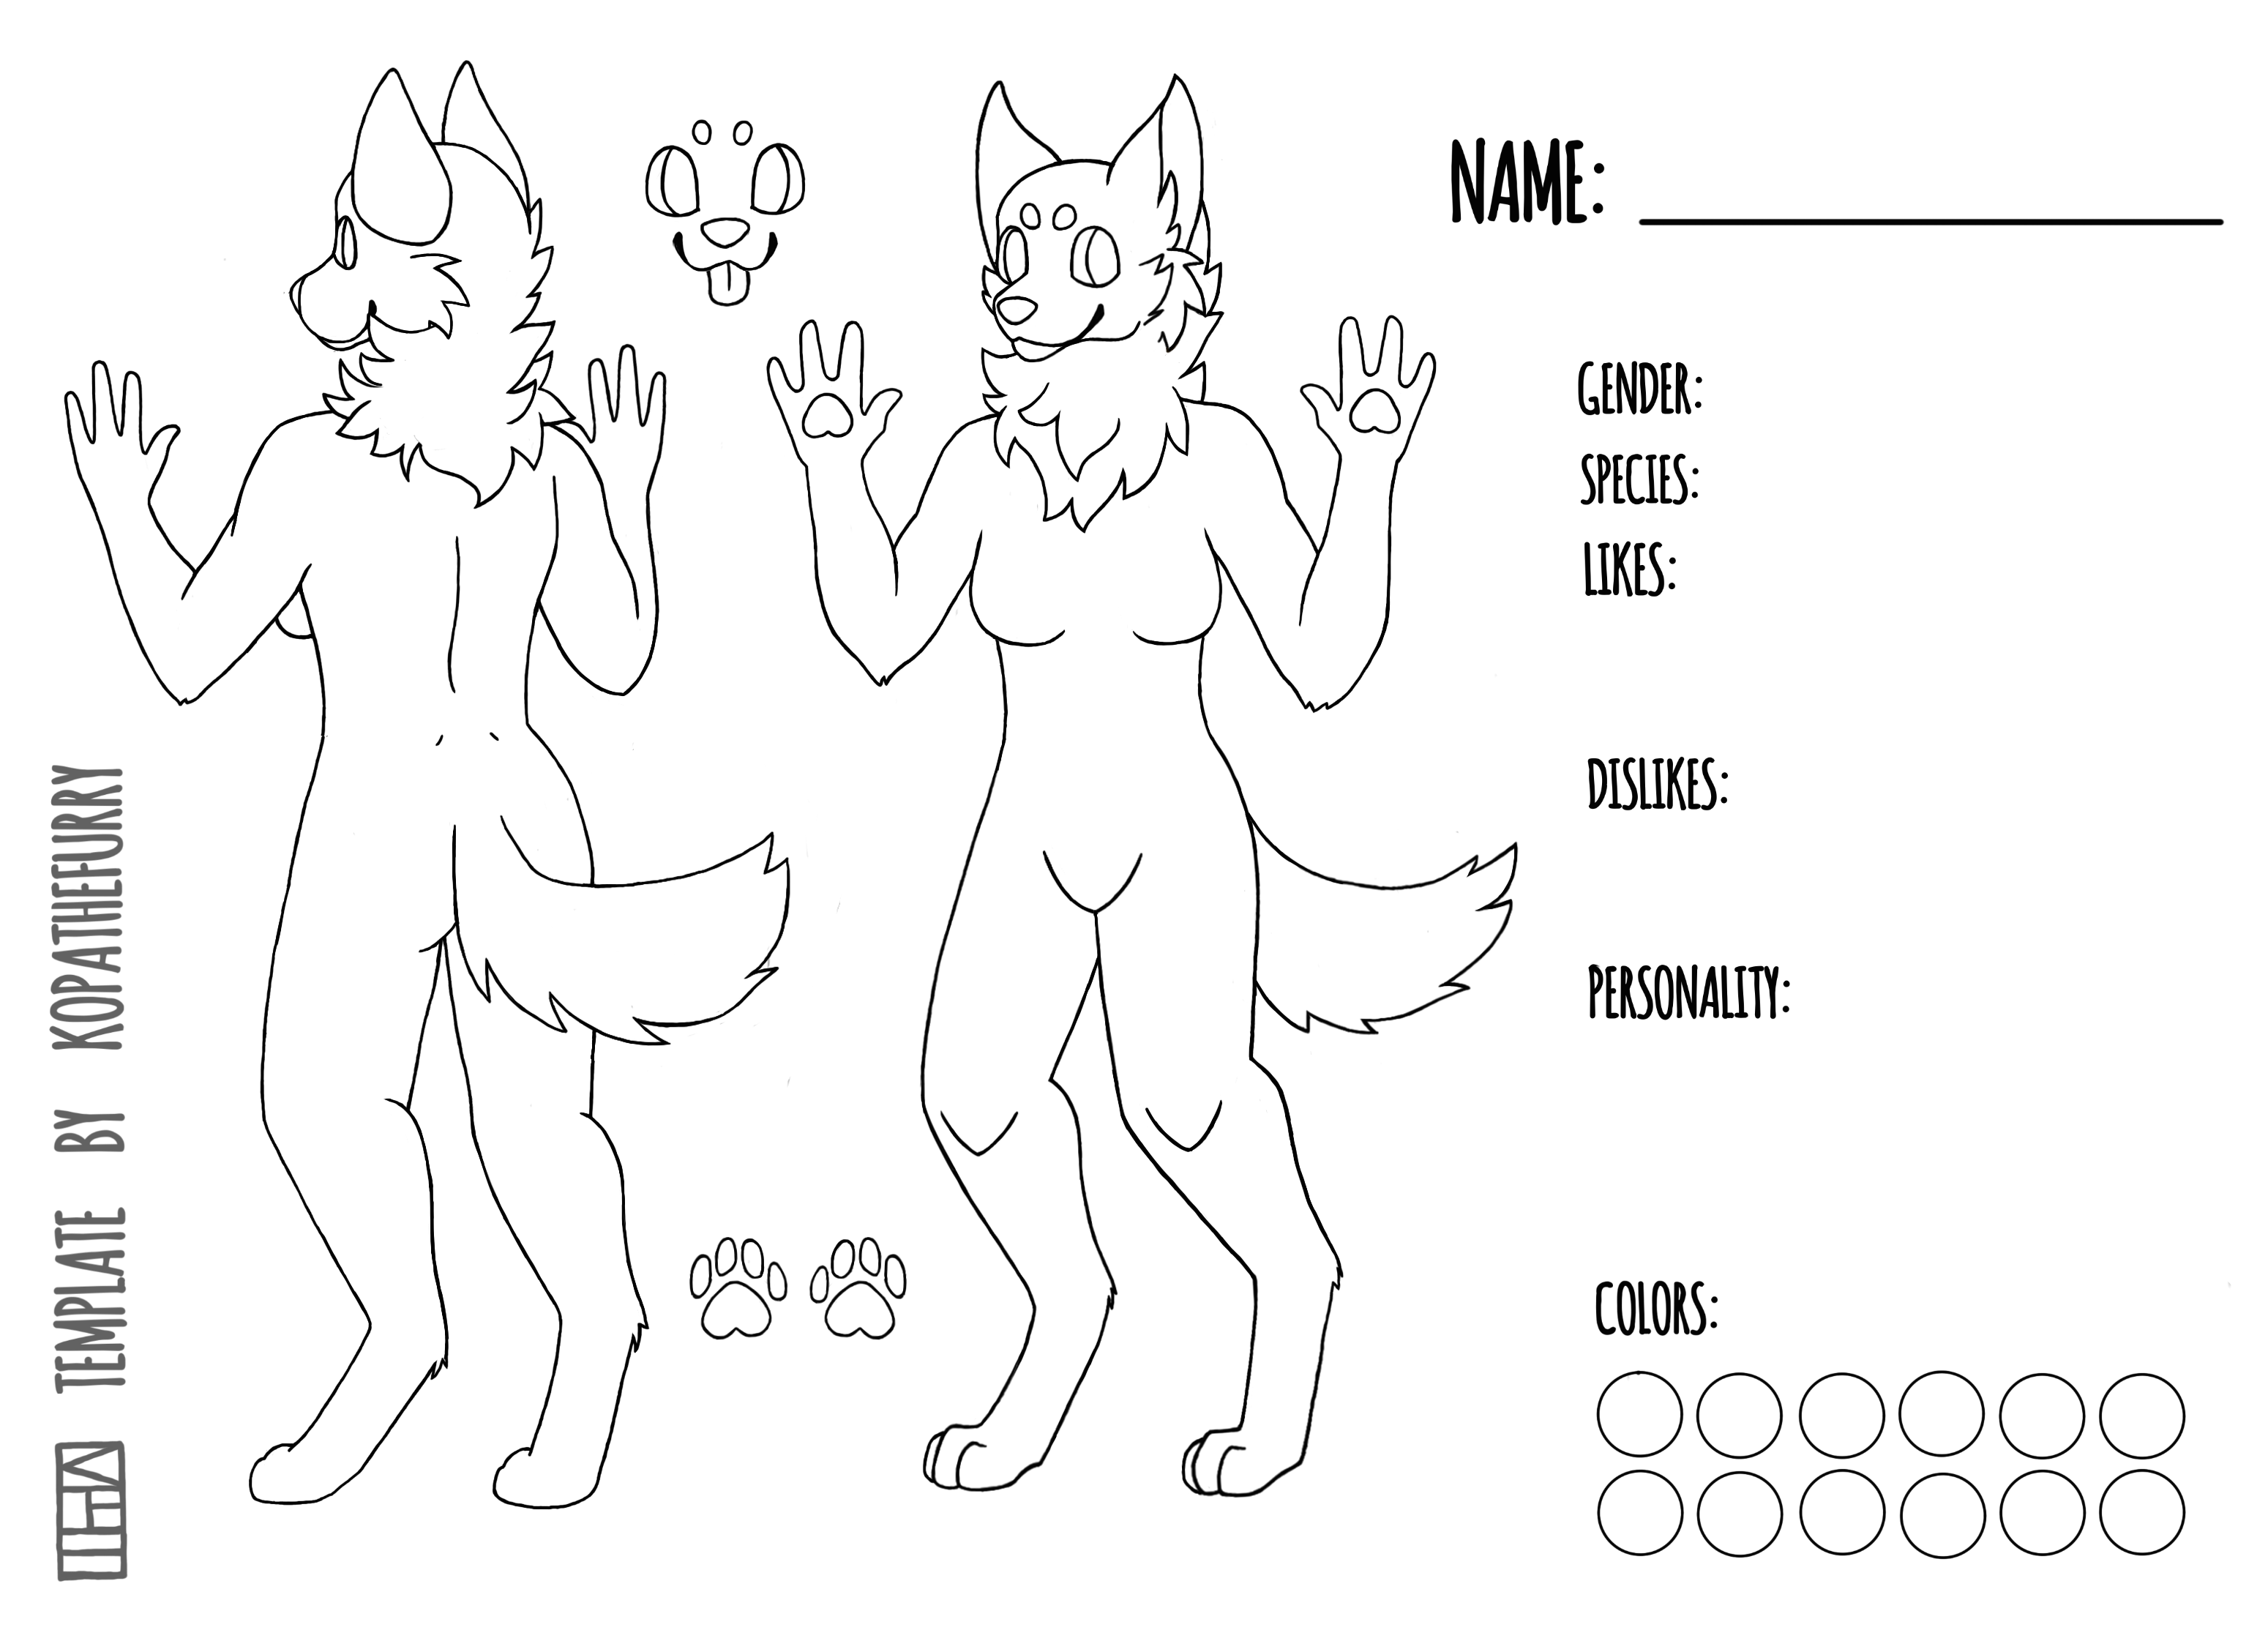 FREE - Female Canine Template / Base by calypso-art on DeviantArt